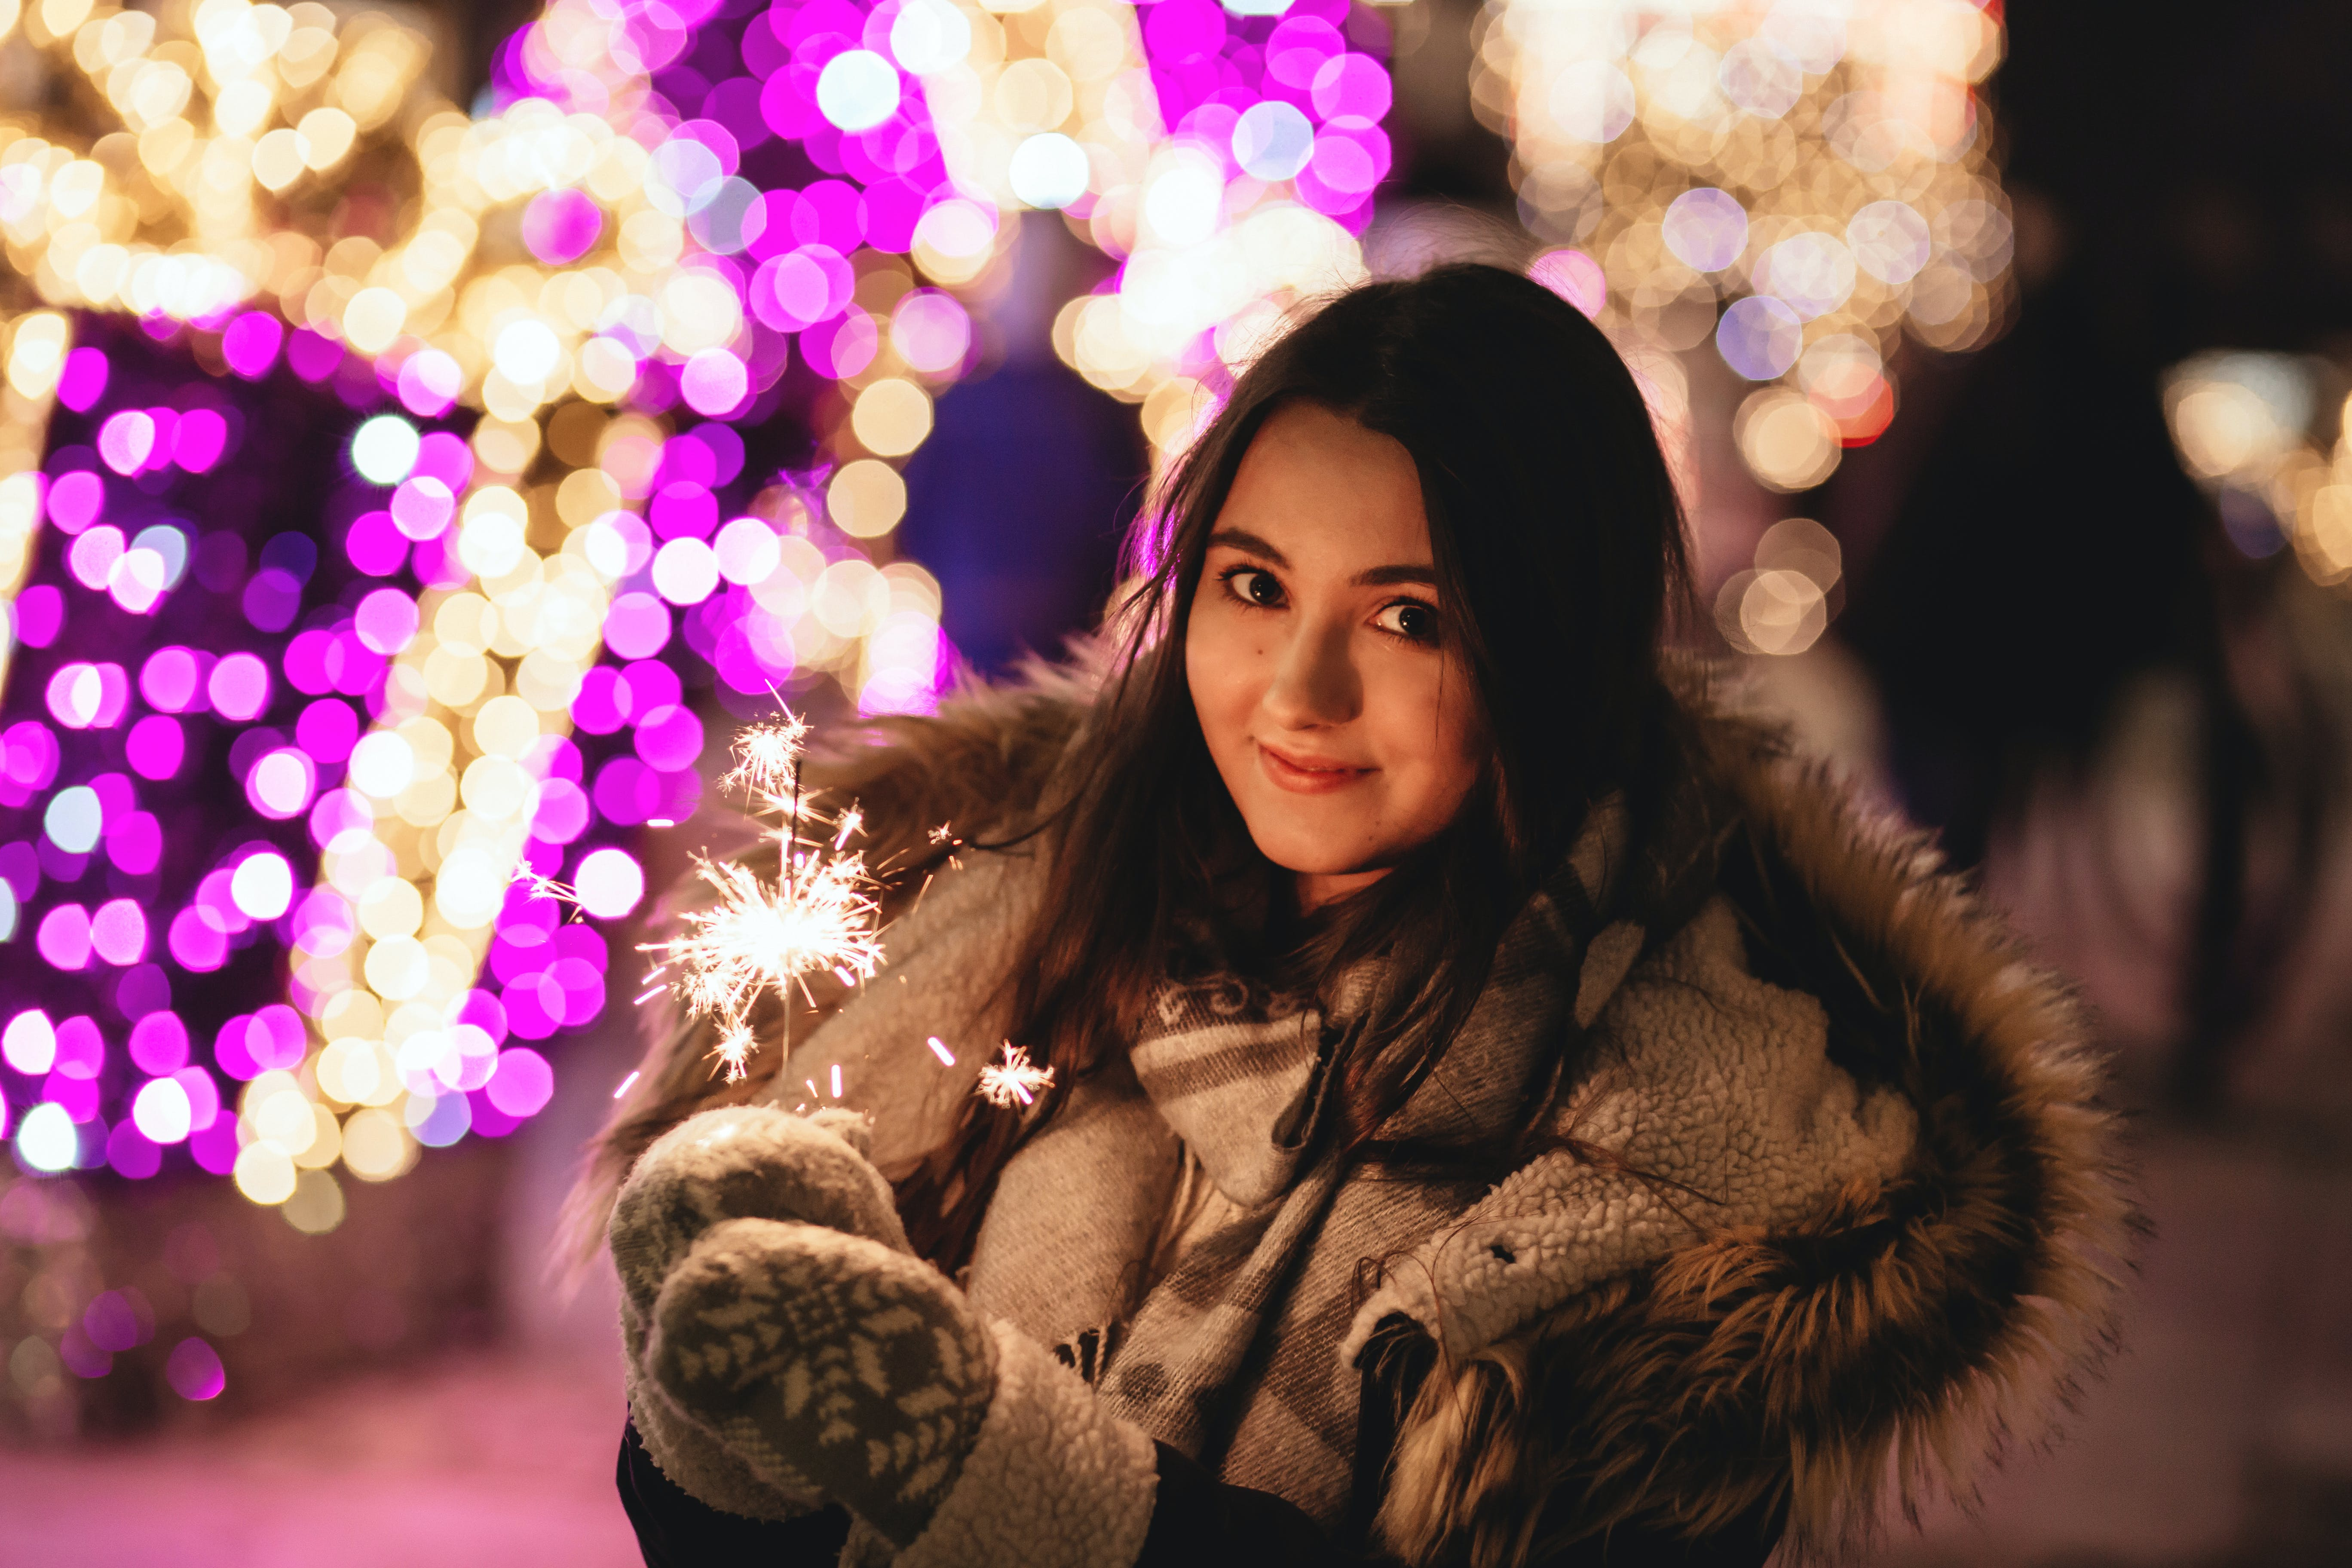 Bokeh Photography of Woman in Brown Parka Jacket